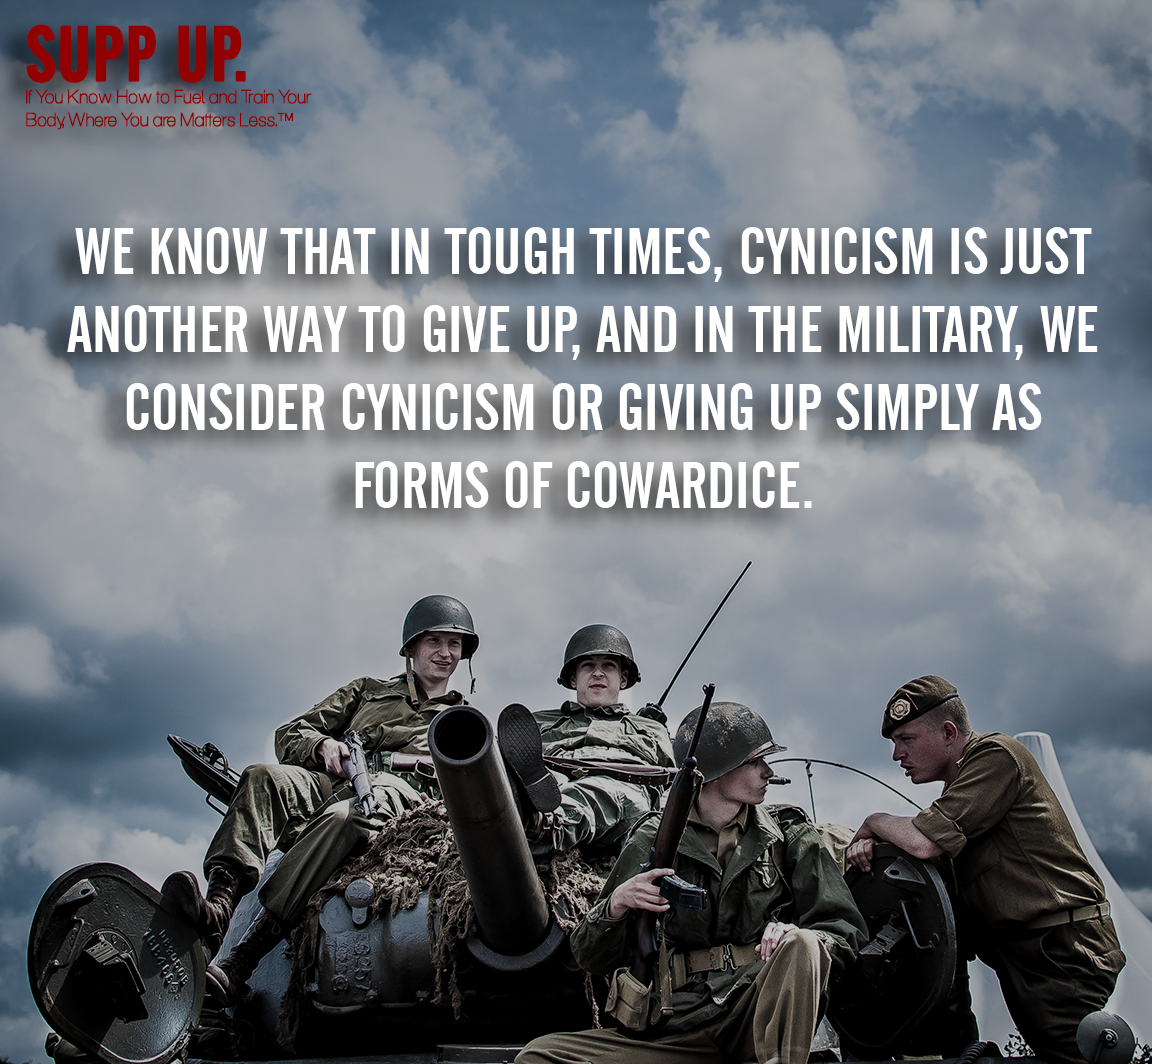 We know that in tough times cynicism is just another way to give up and in the military we consider cynicism or giving up simply as forms of cowardice quote, SUPP UP quotes, military quotes